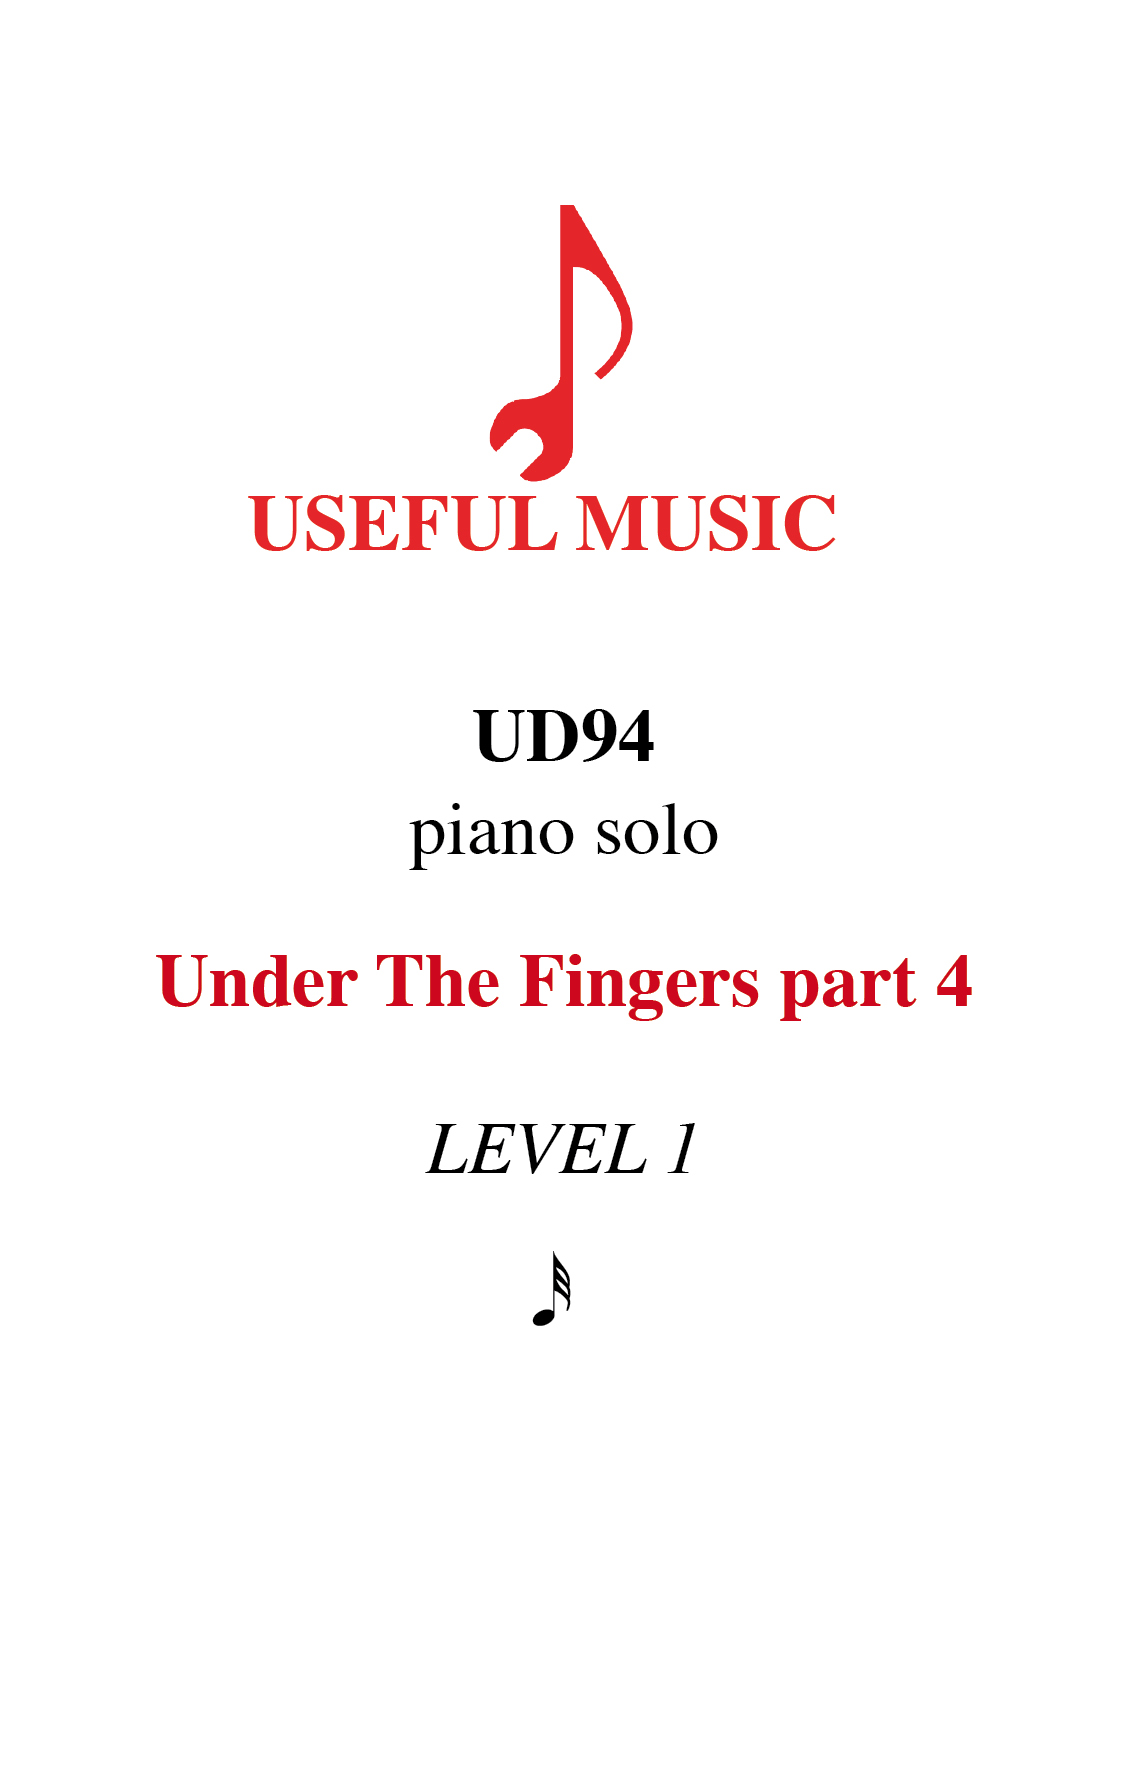 Under the Fingers part 4